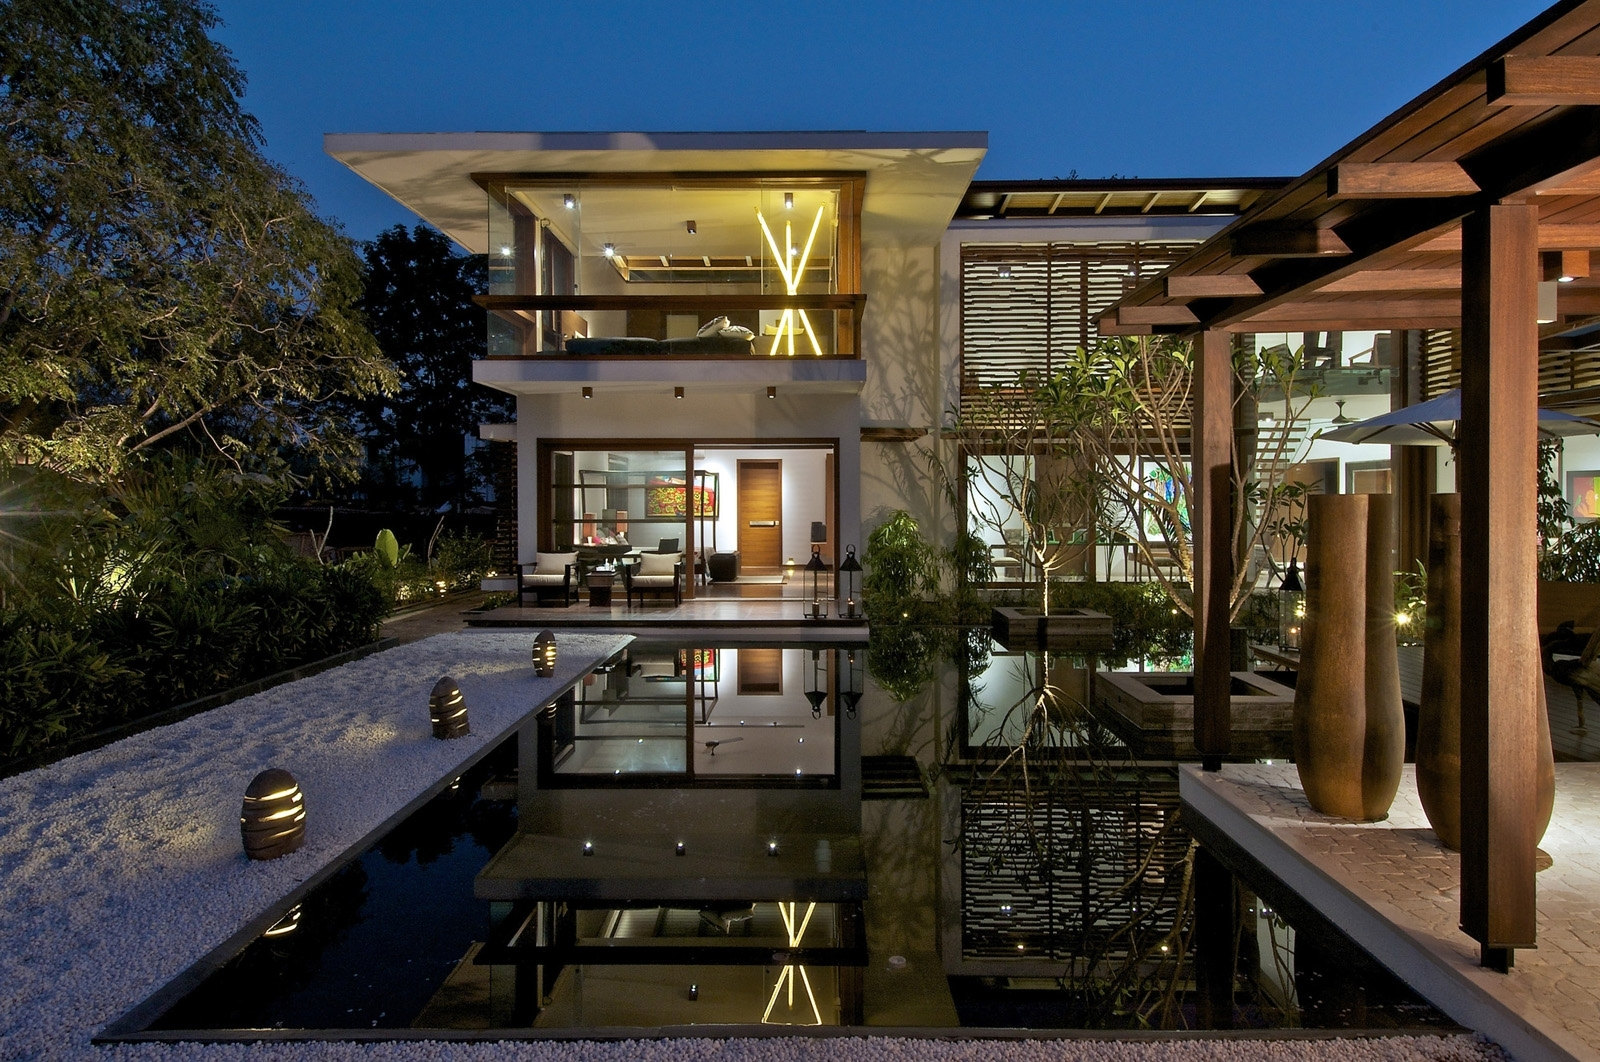 Timeless Contemporary House In India With Courtyard Zen Garden inside House Design With Garden India